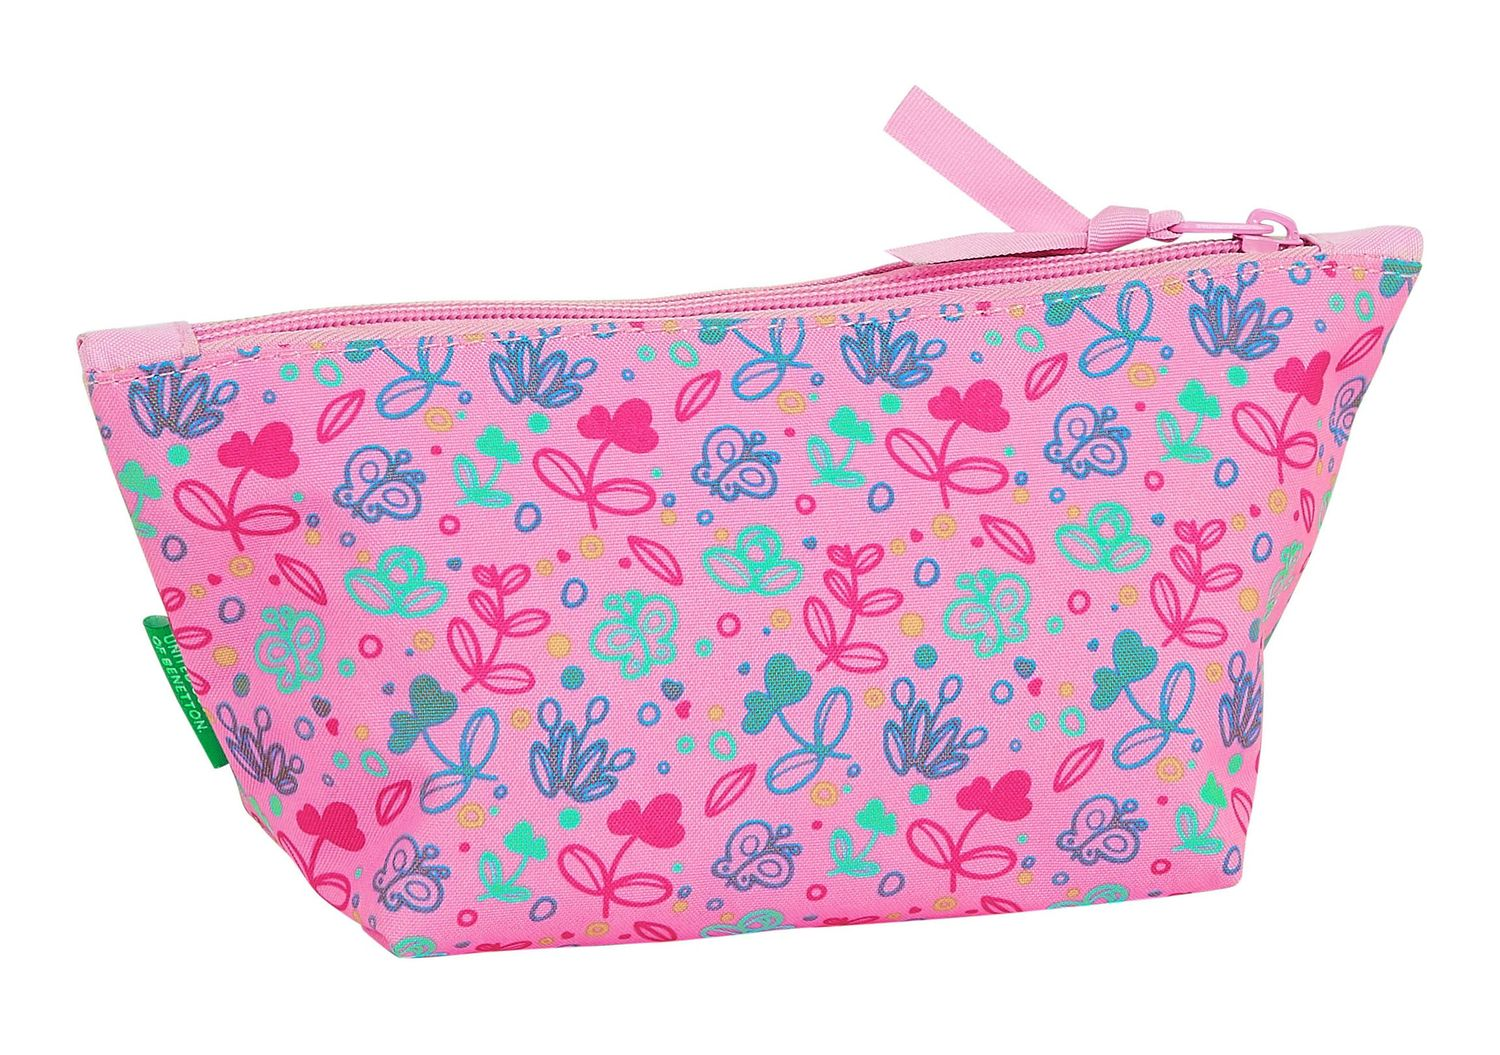 BENETTON Pink Butterflies Make Up Toiletry Bag – image 2